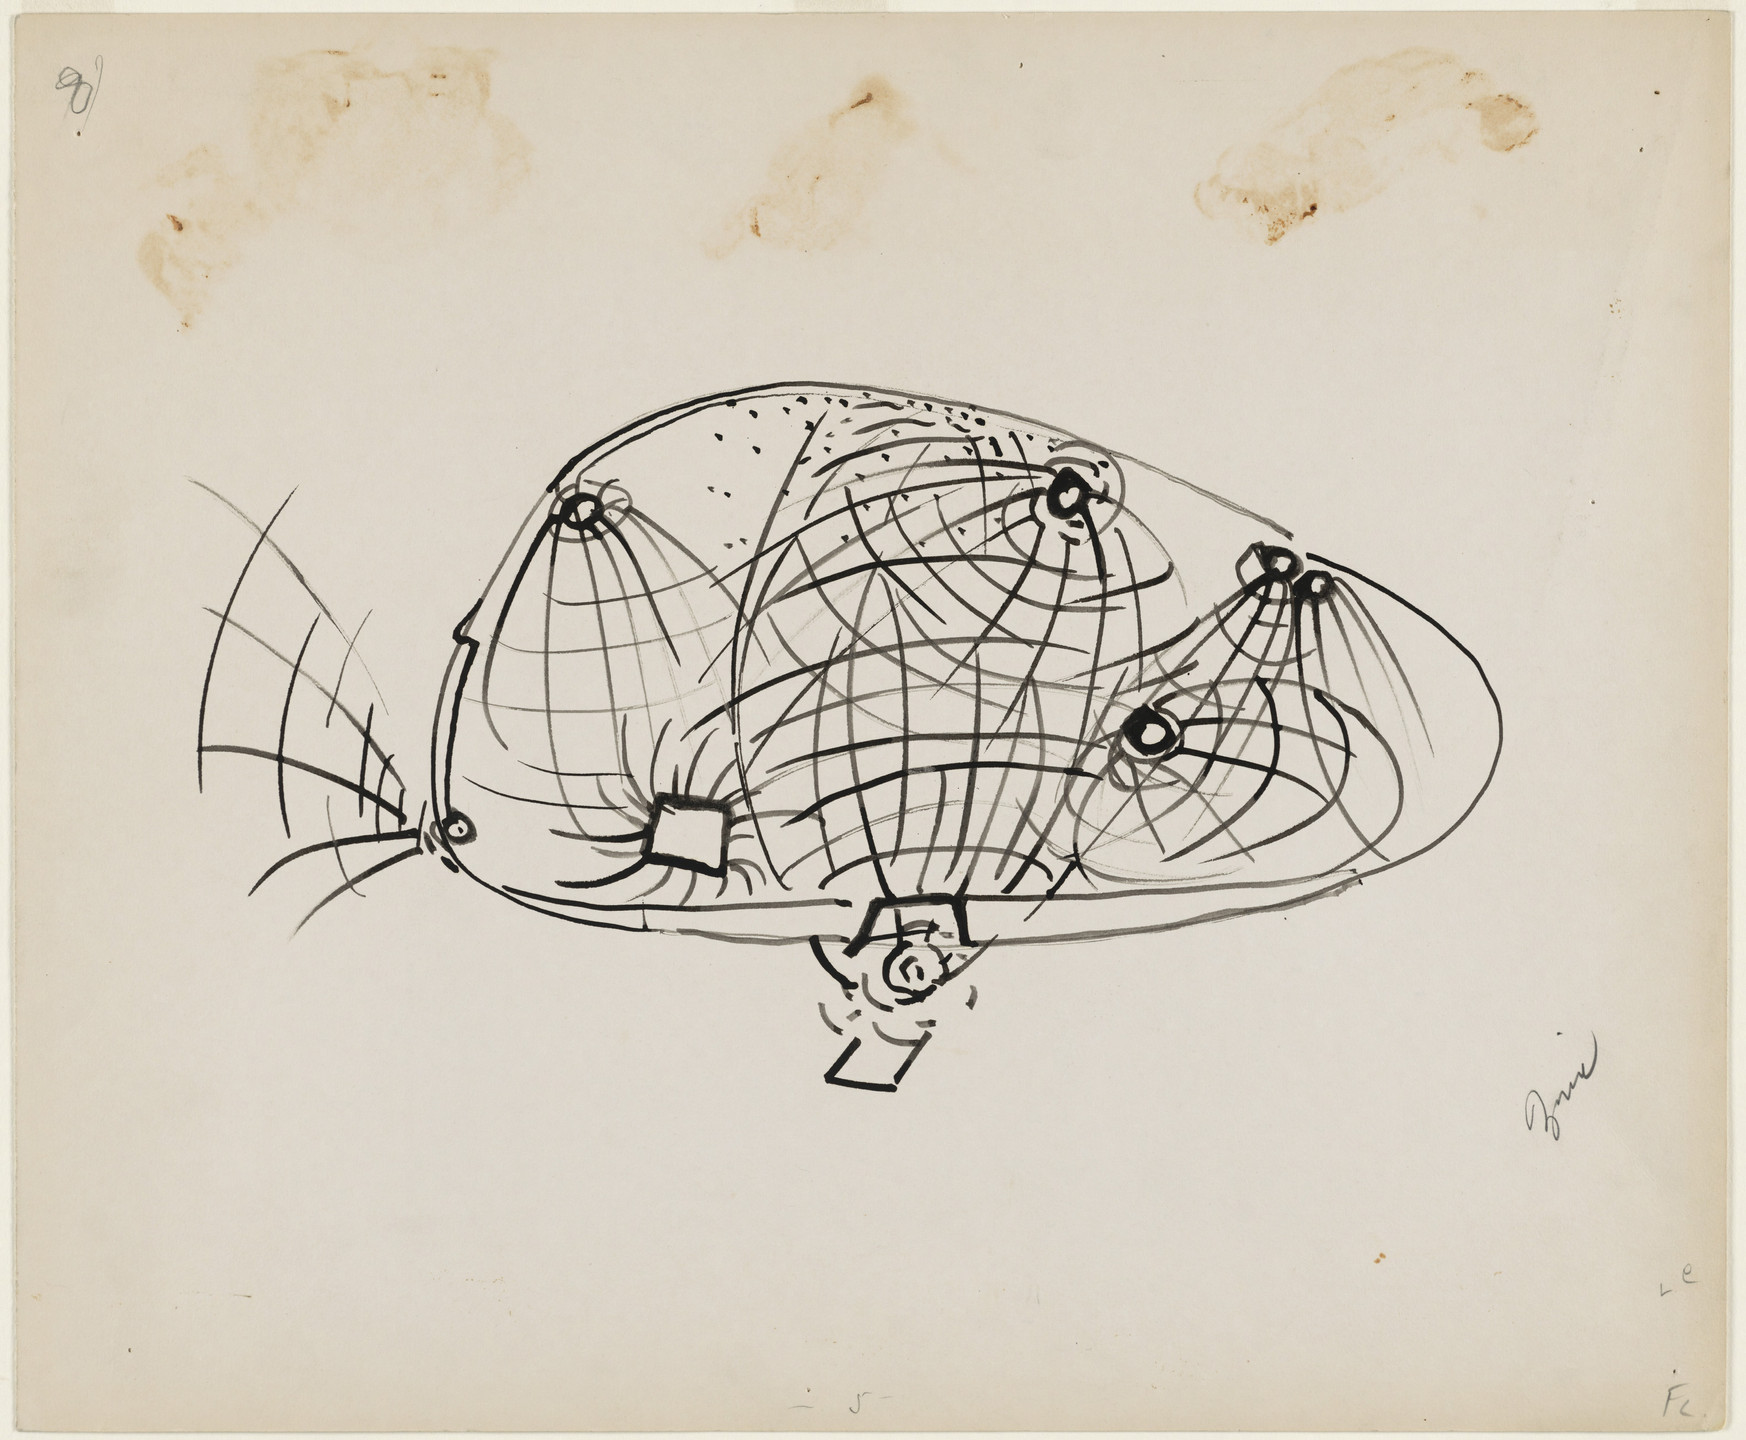 Frederick Kiesler. Endless House Project, Study for lighting. 1951